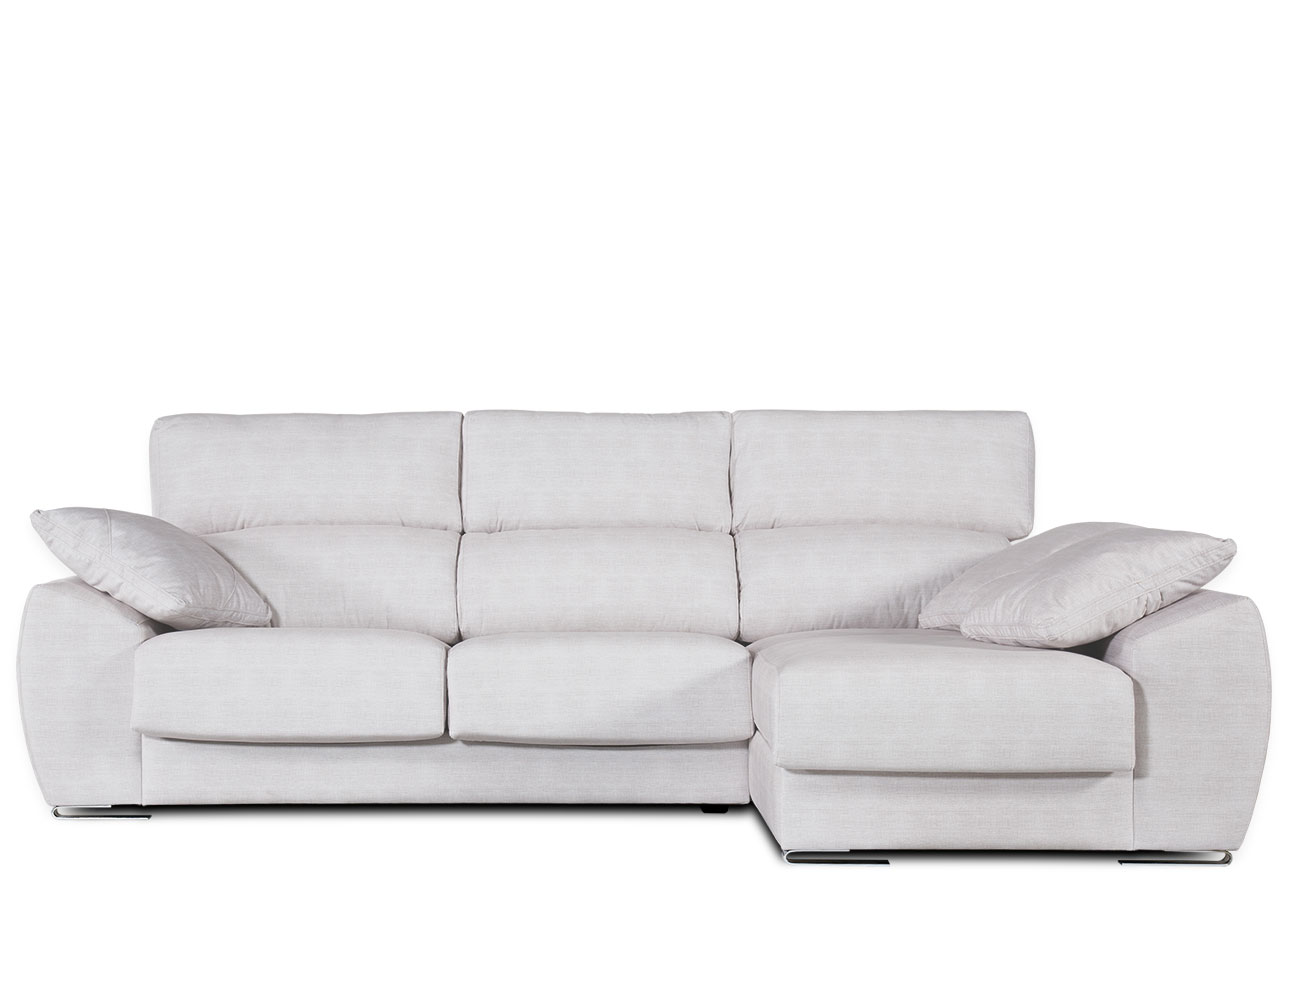 Sofa chaiselongue moderno blanco